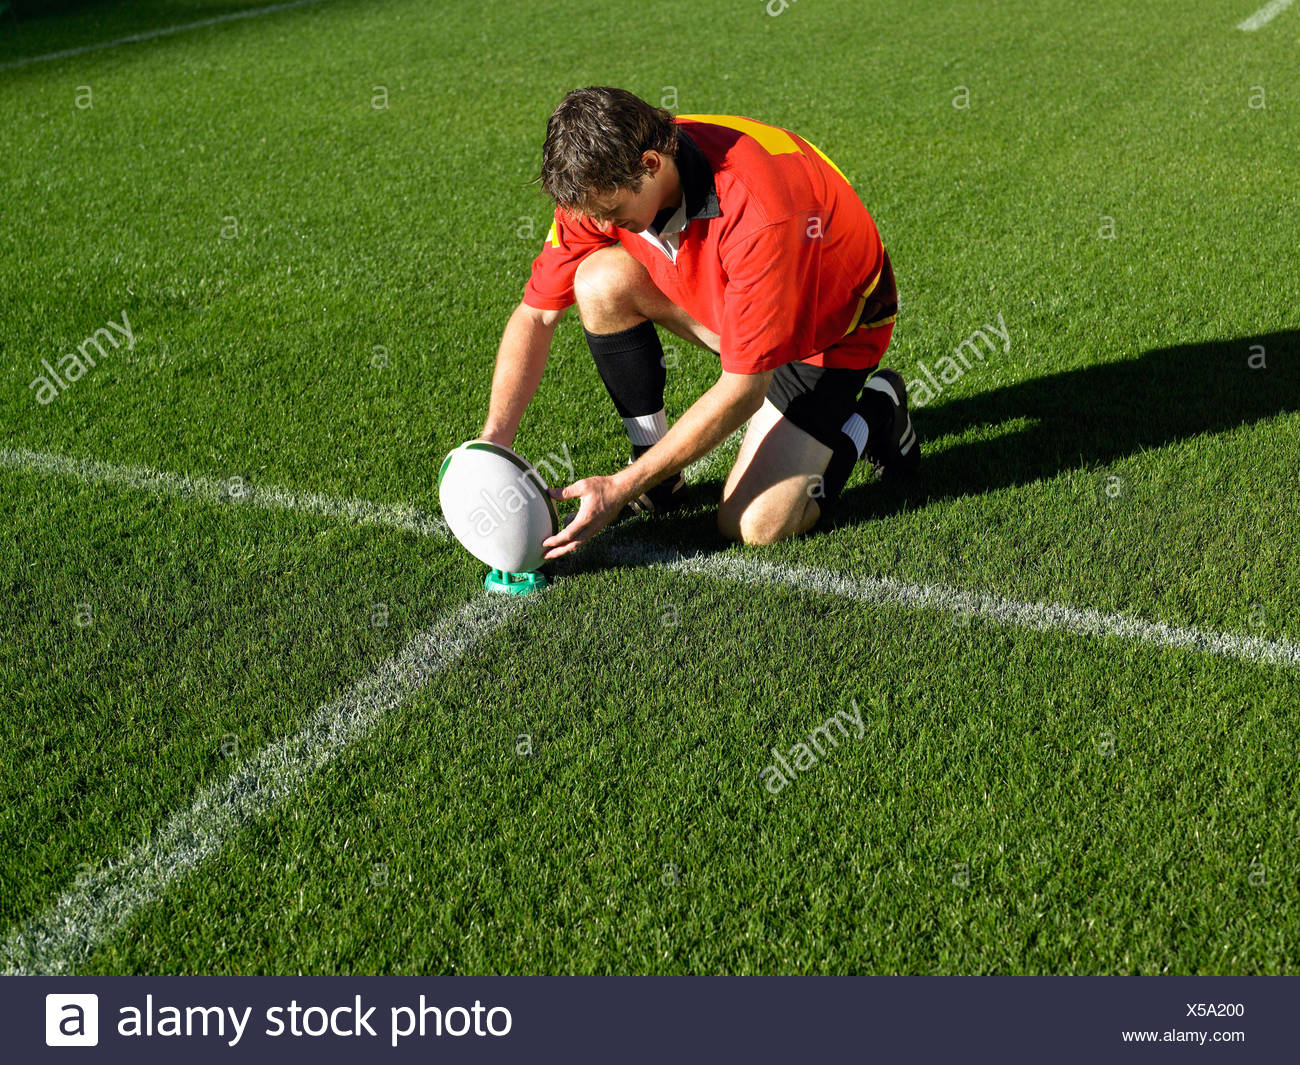 Rugby player placing ball - Stock Image